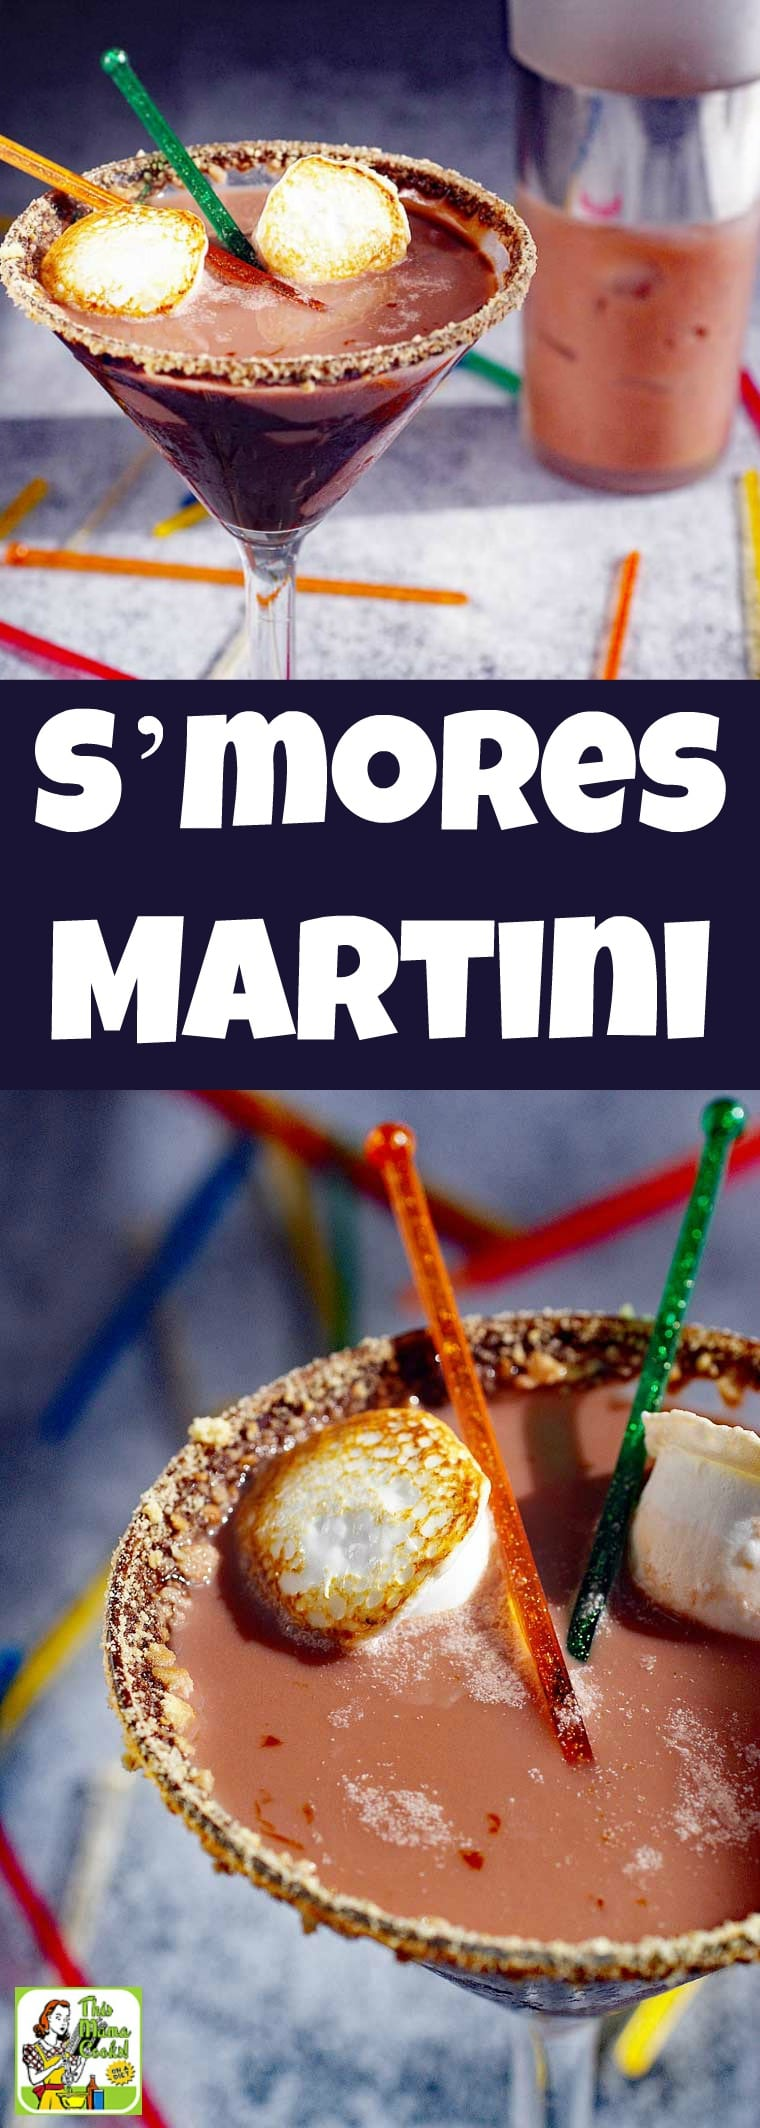 A S'mores Martini is a chocolate martini recipe that tastes like making s'mores and roasting marshmallows over a campfire. It\'s made with marshmallow vodka, chocolate coconut milk and is dairy free and gluten free. It\'s the ultimate chocolate martini cocktail drink for Christmas, New Year\'s Eve or Valentine\'s Day. #recipe #easy #recipeoftheday #glutenfree #drinks #cocktails #Christmas #NewYearsEve #chocolate #martini #cocktailrecipe #drinkrecipe #dairyfree #smores #vodka #vodkacocktail